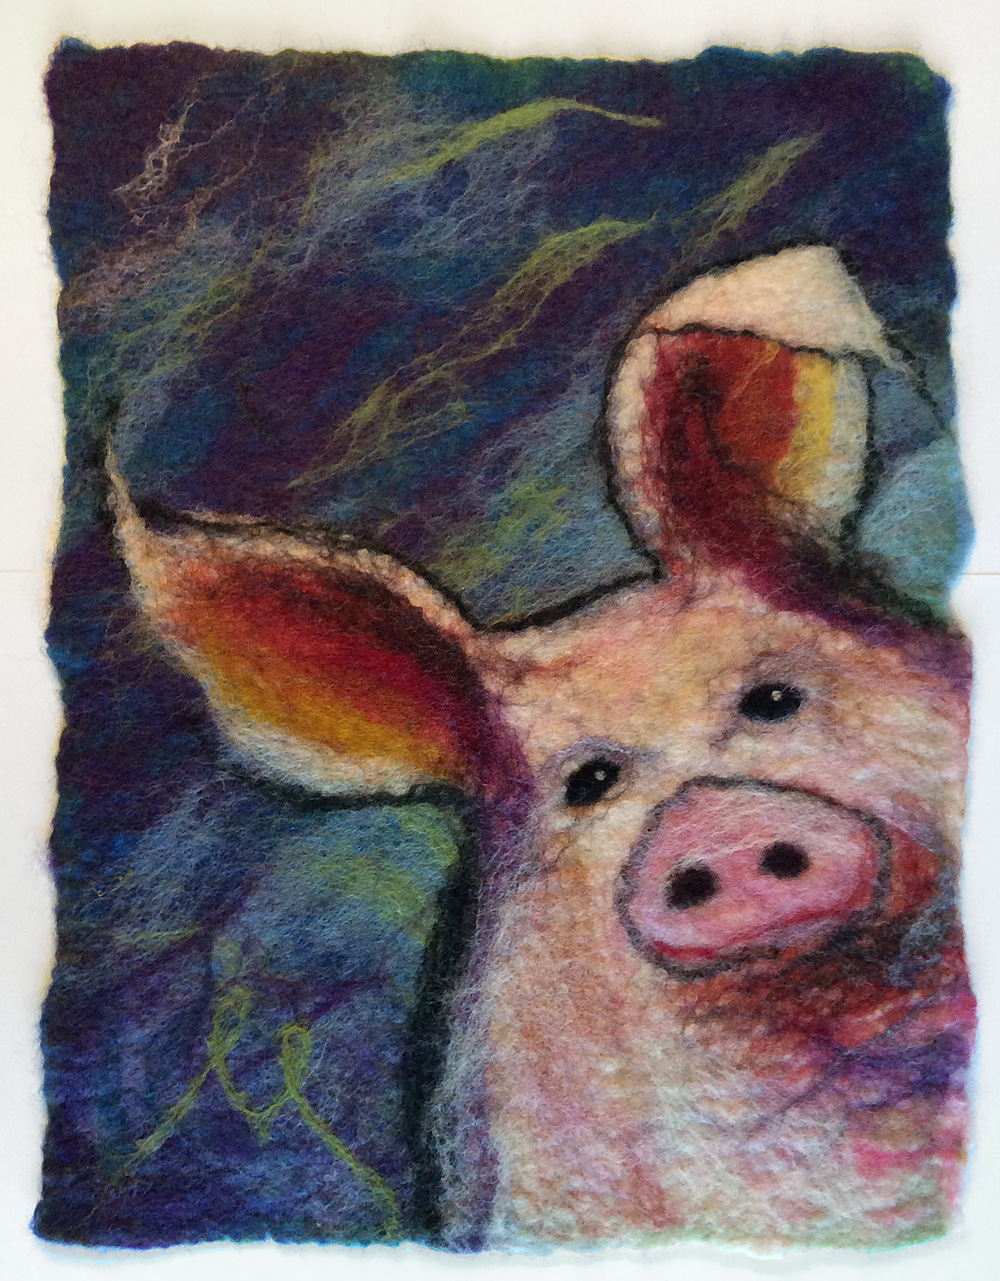 And here is the same tapestry, fully felted. Sold